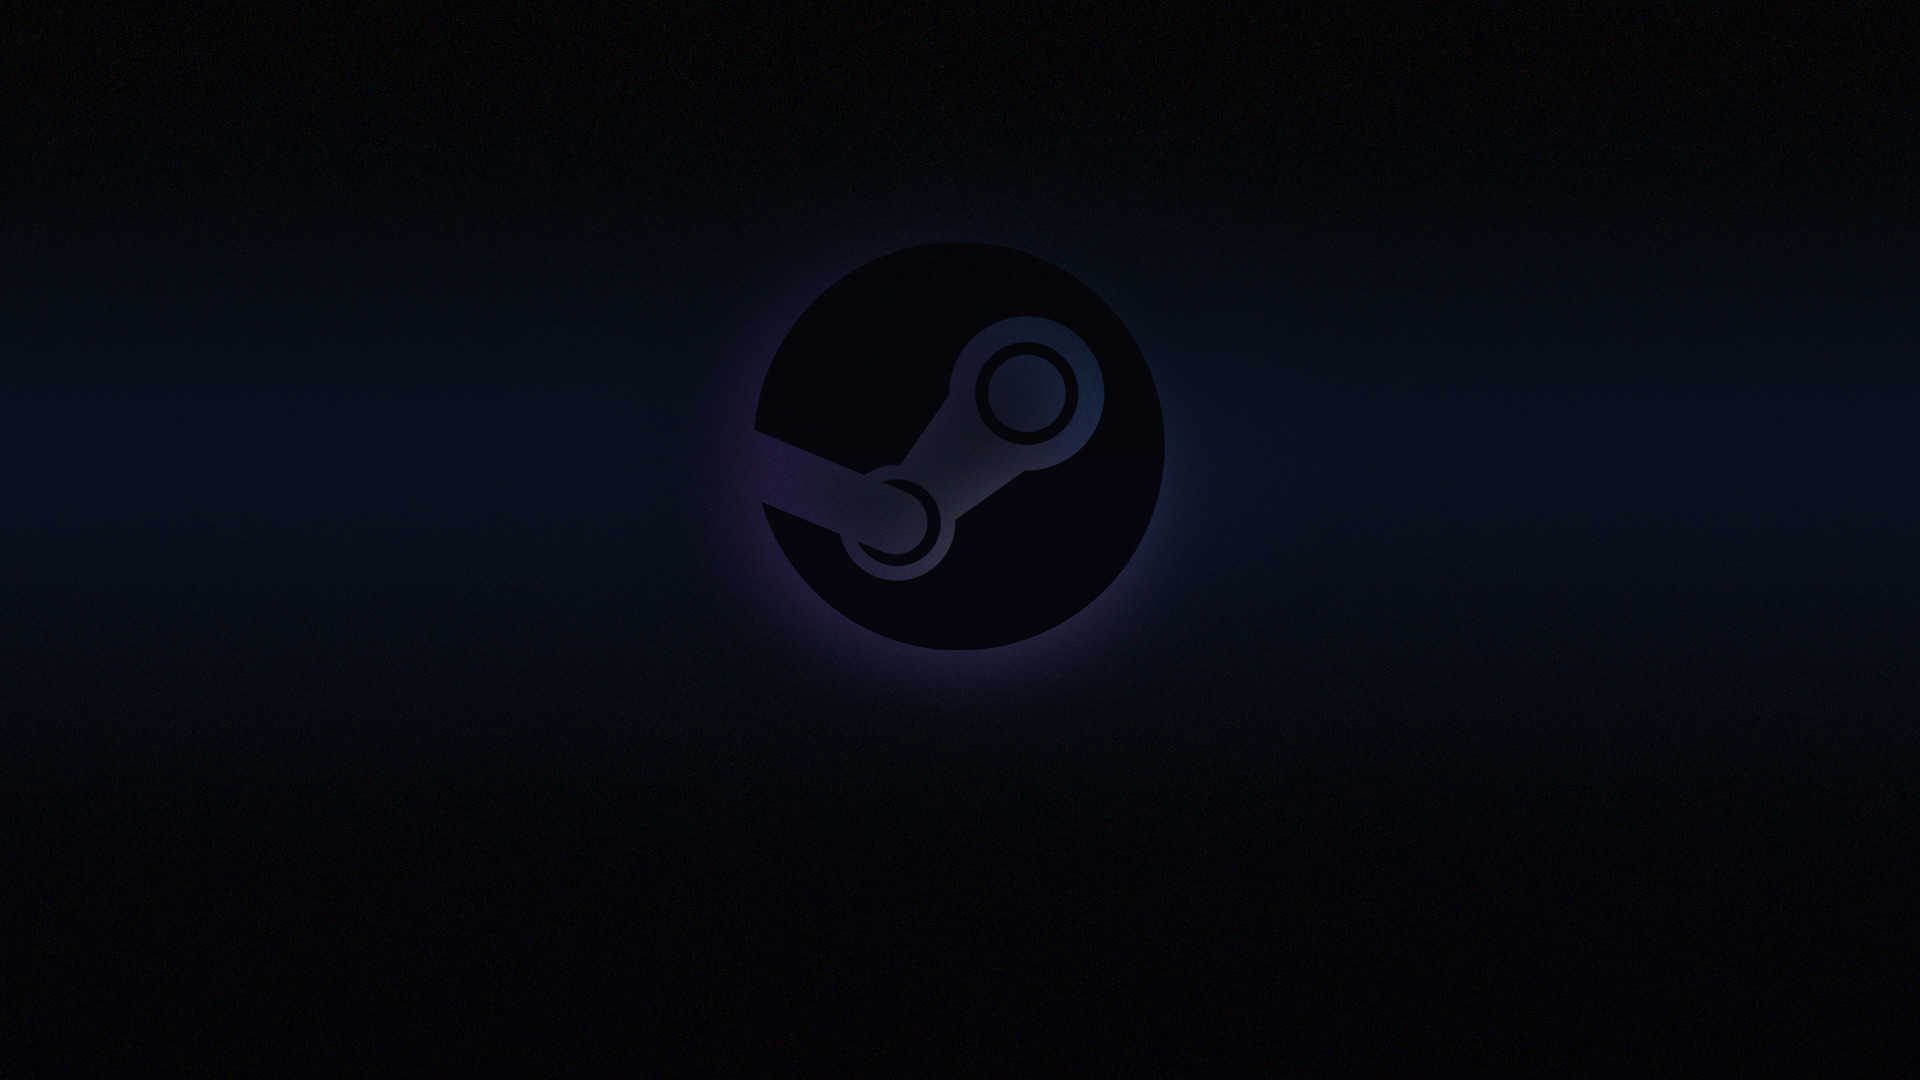 Steam [1920×1080]   Wallpapers   Wallpapers Pictures   Picc.it